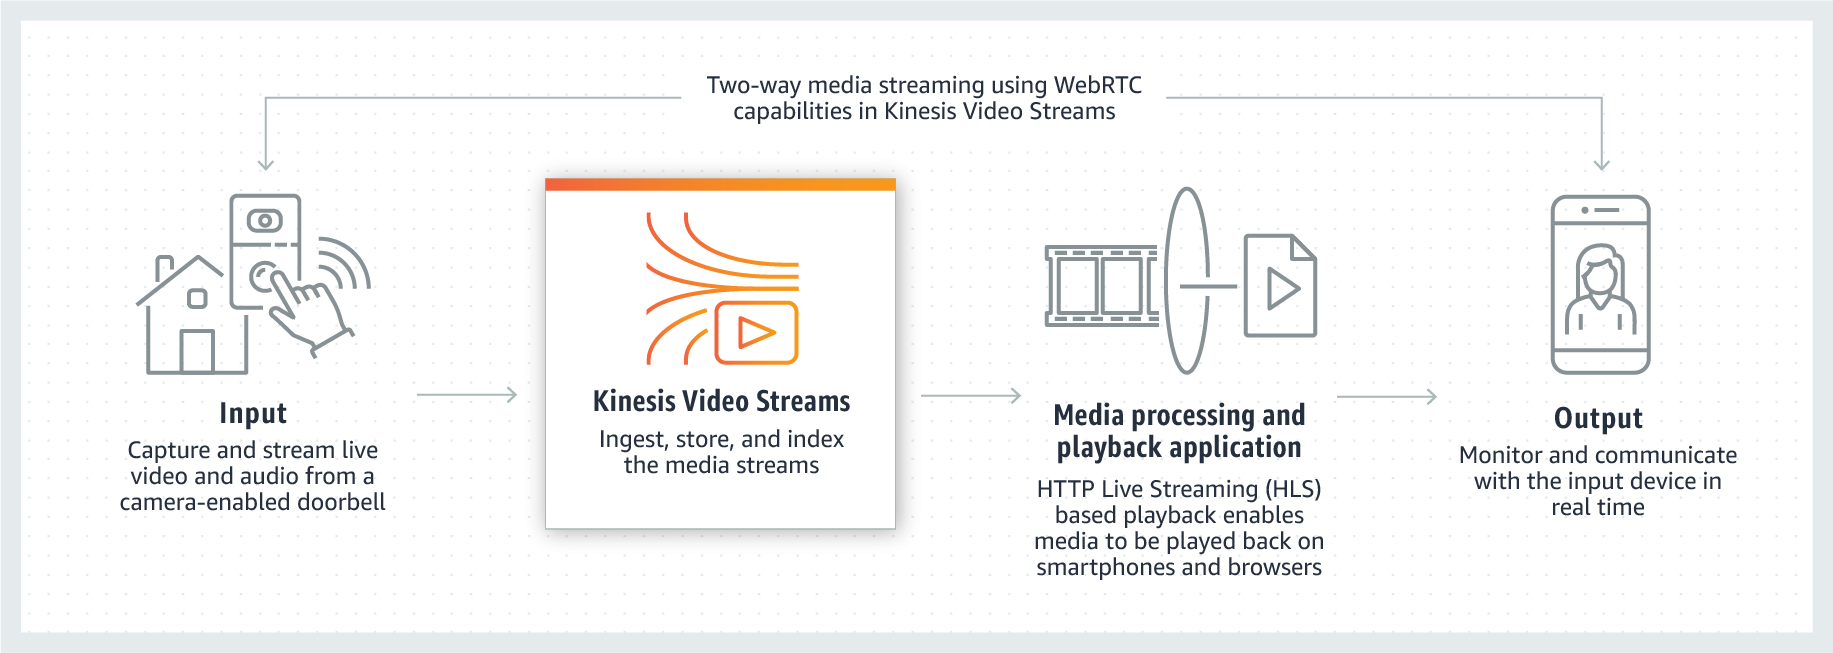 Caso de uso de Amazon Kinesis Video Streams en hogar inteligente